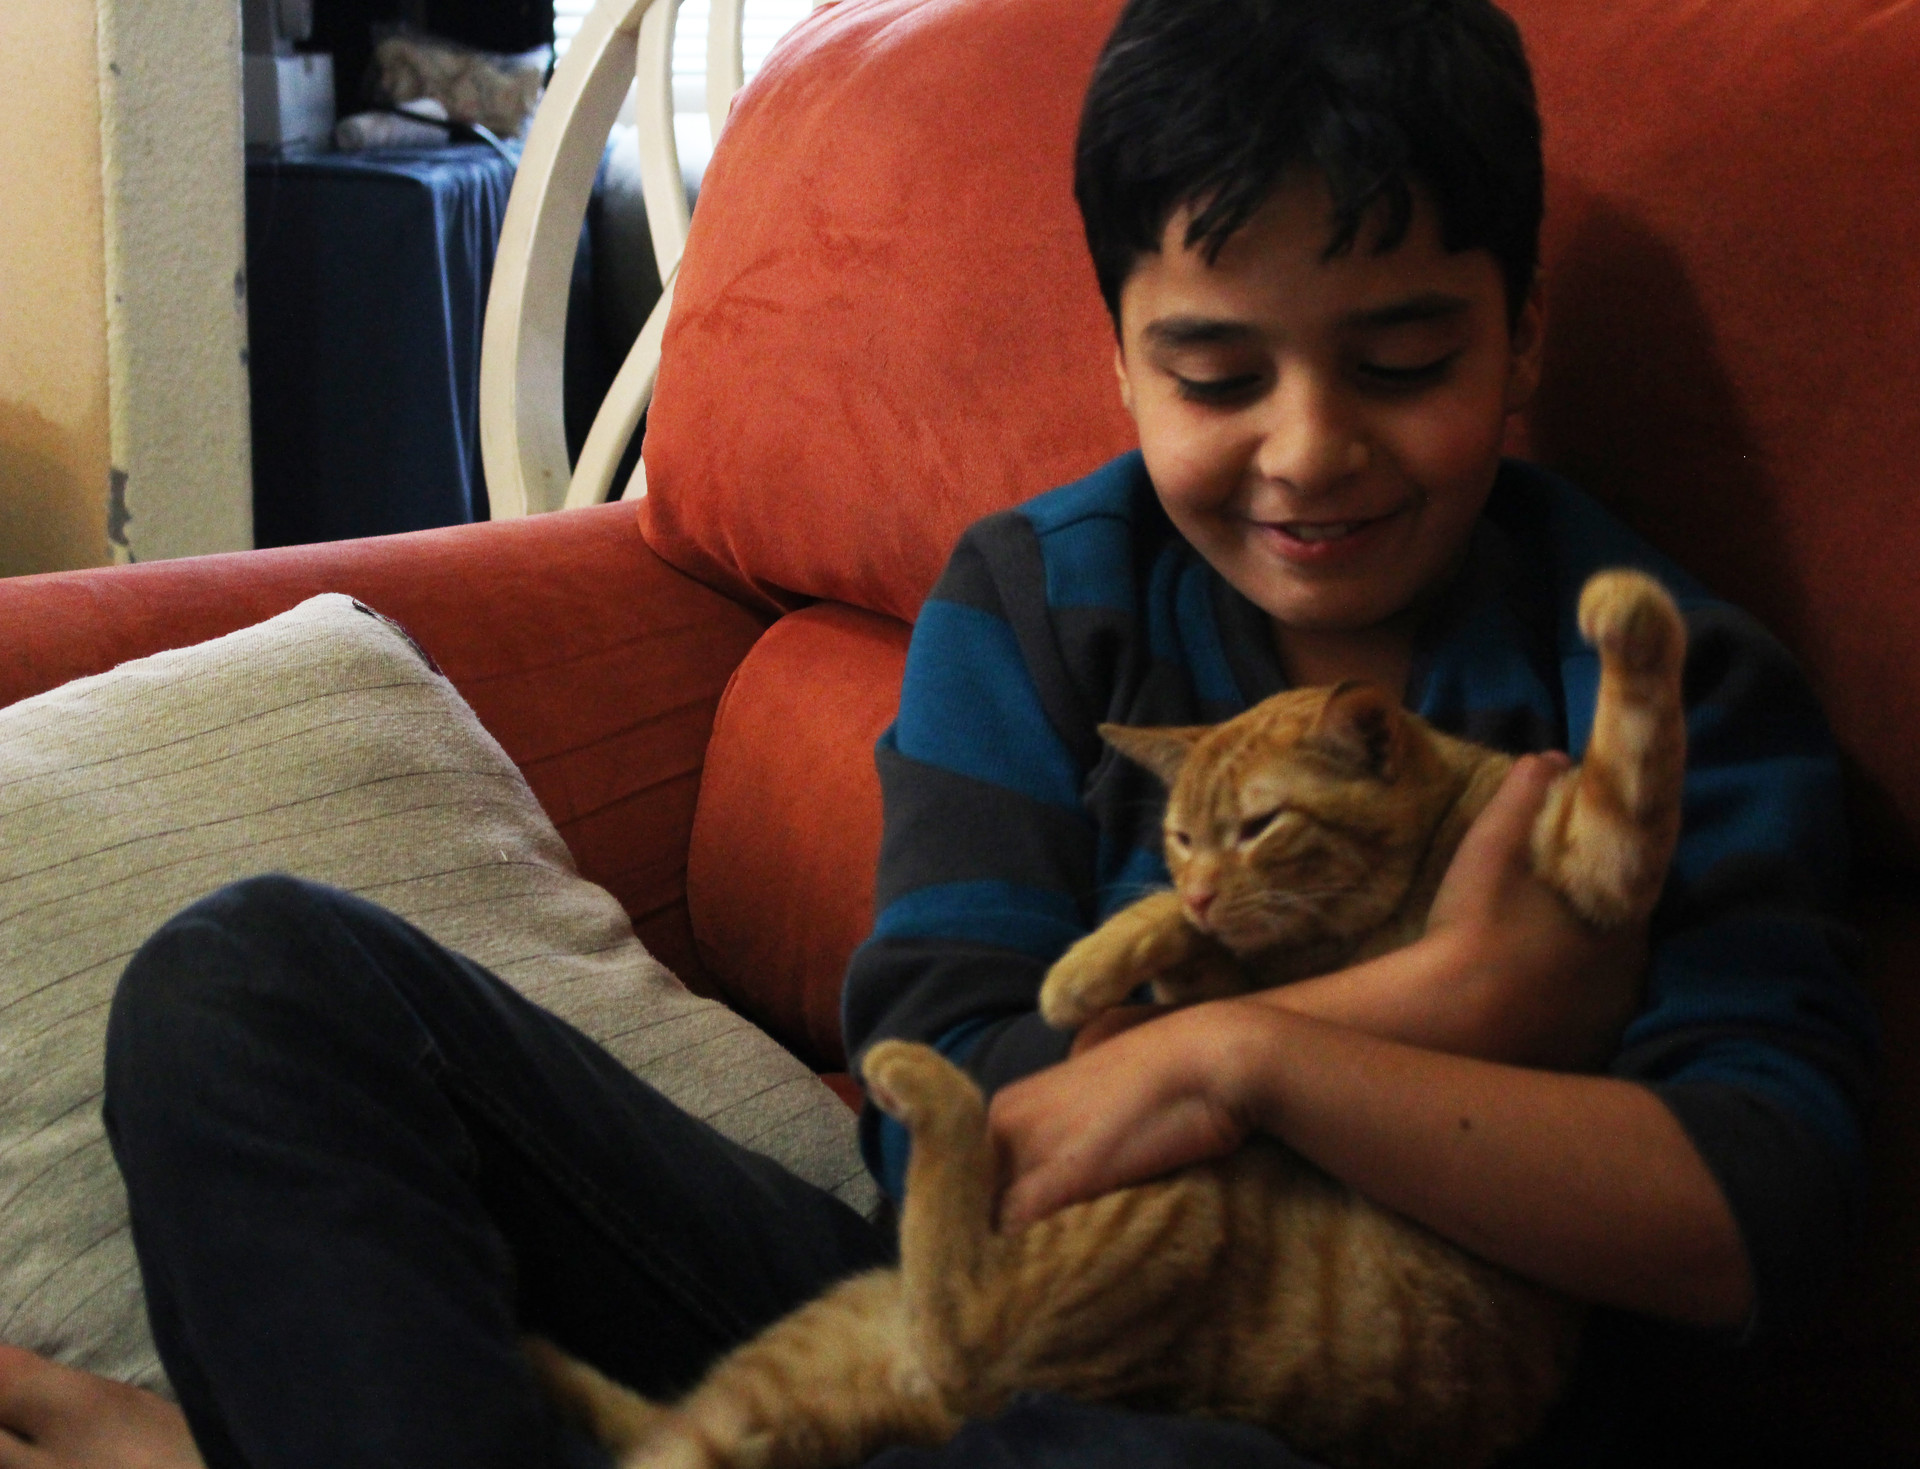 Mohammed Rawoas, 10, plays in his family's Oakland apartment with a cat he adopted and called Simbad.